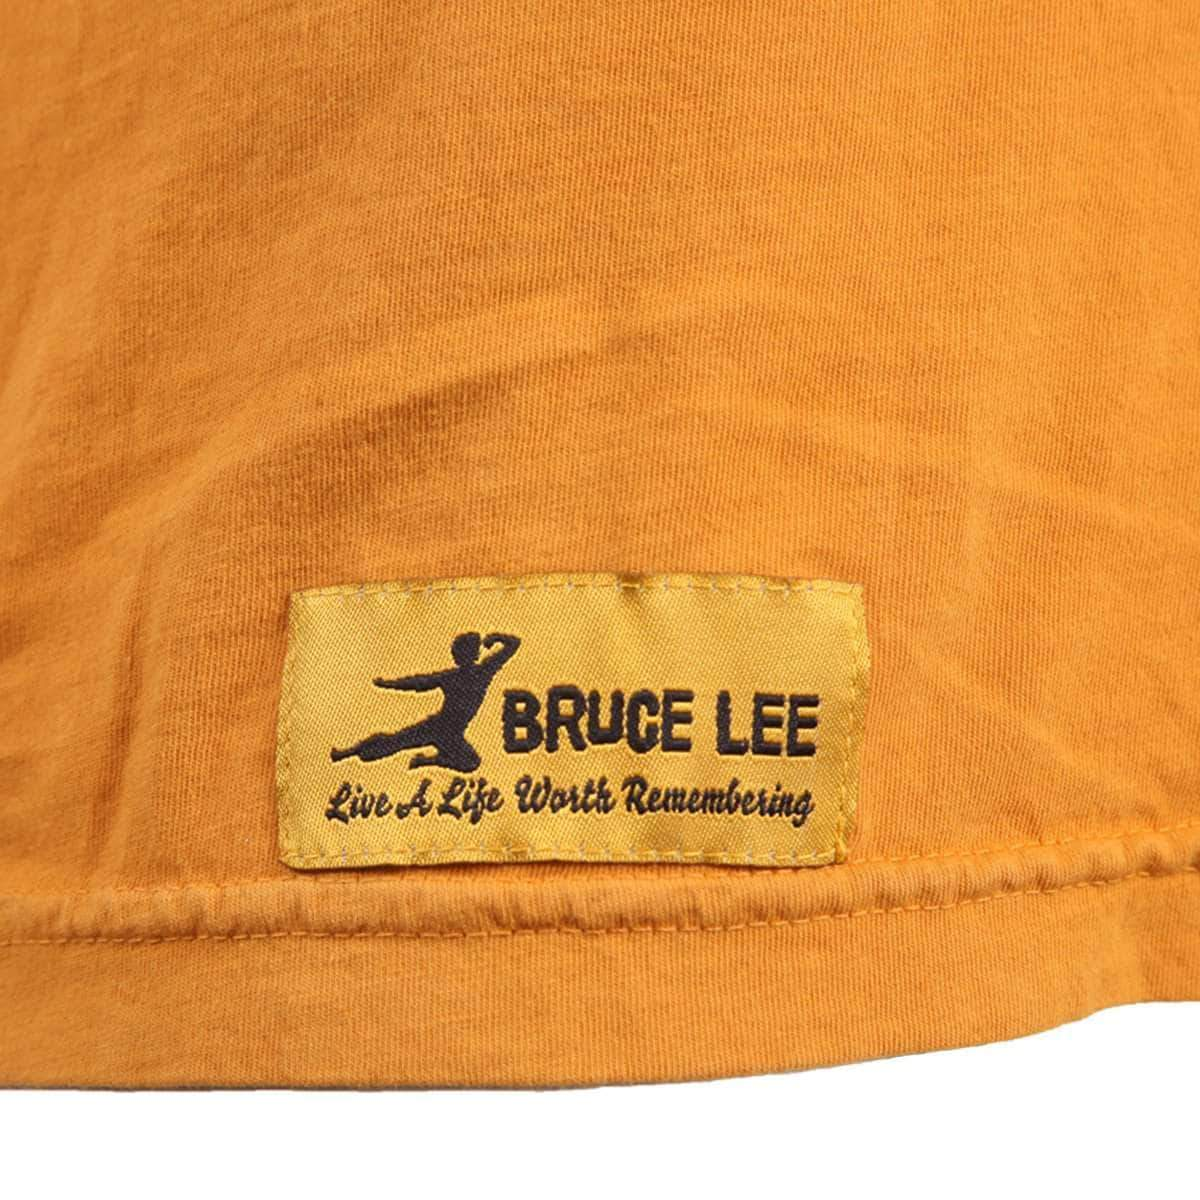 Bruce Lee Legendary T-shirt